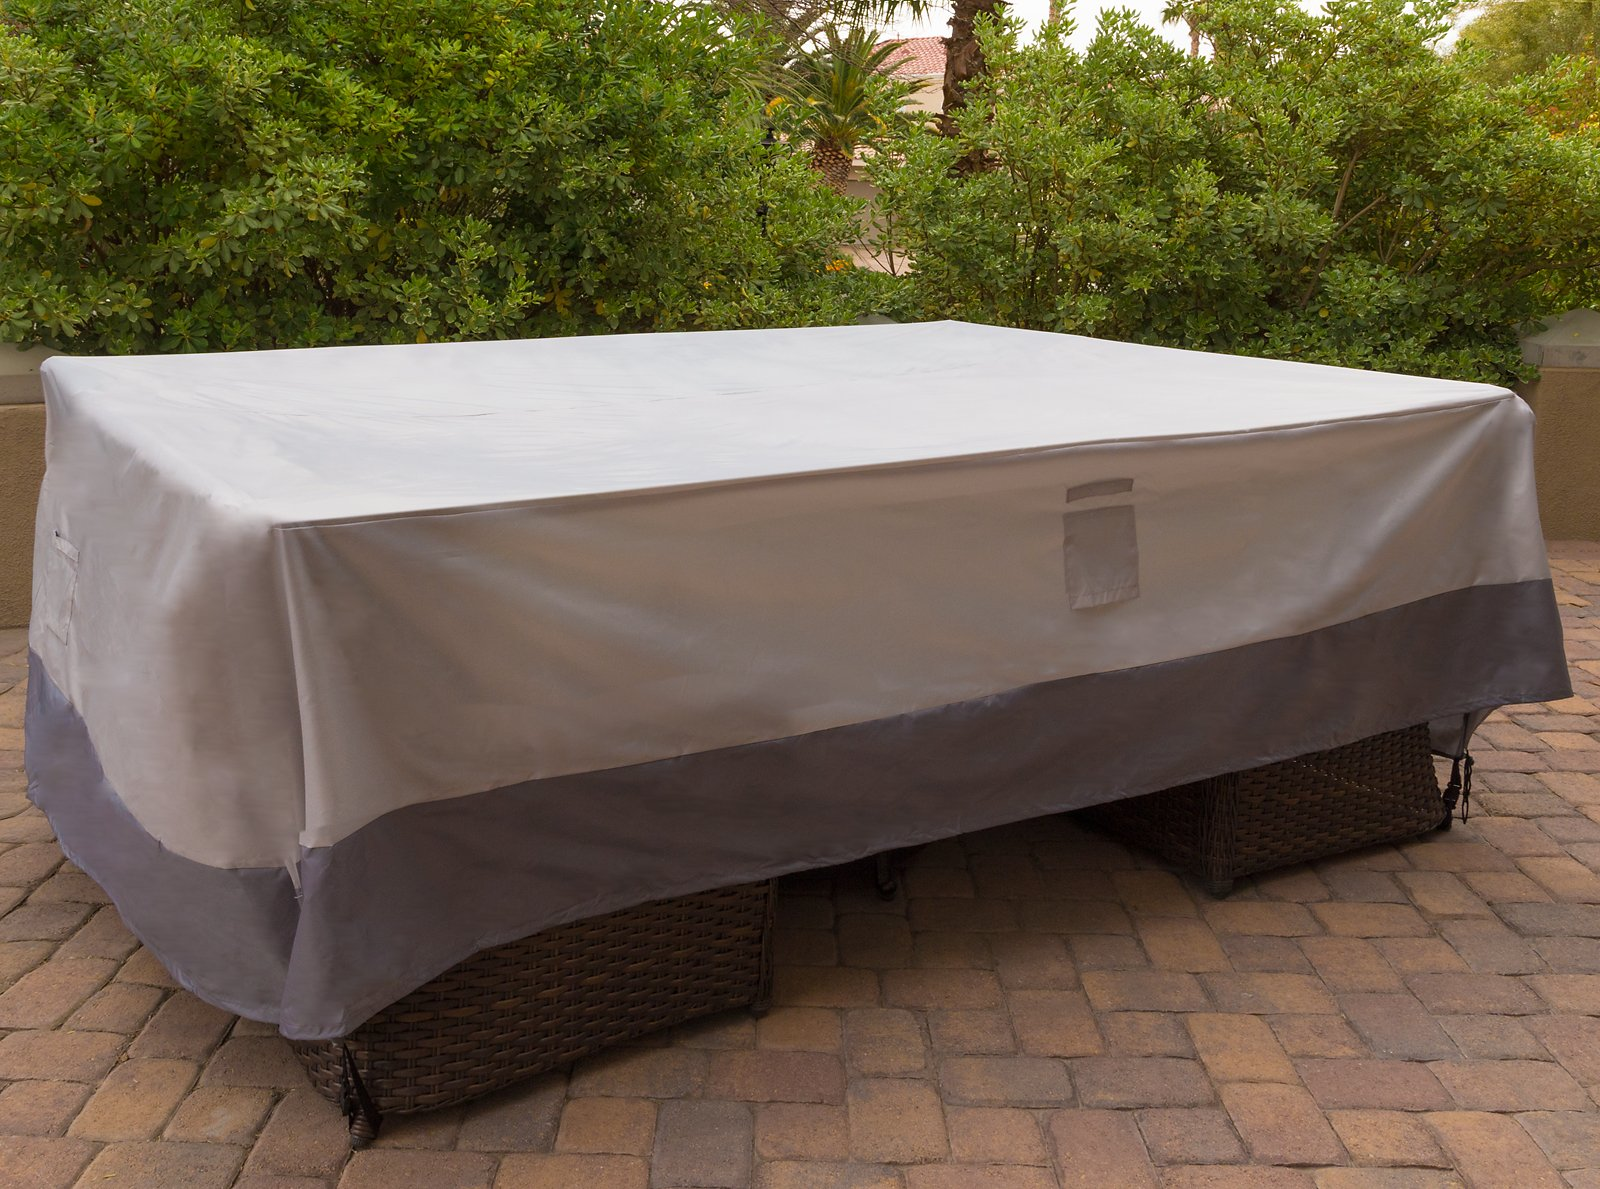 Reusable Revolution 128'' x 84'' XL Patio Furniture Cover - Water Resistant Rectangular Outdoor Patio Set Cover (Light Grey/Dark Grey) by Reusable Revolution (Image #2)